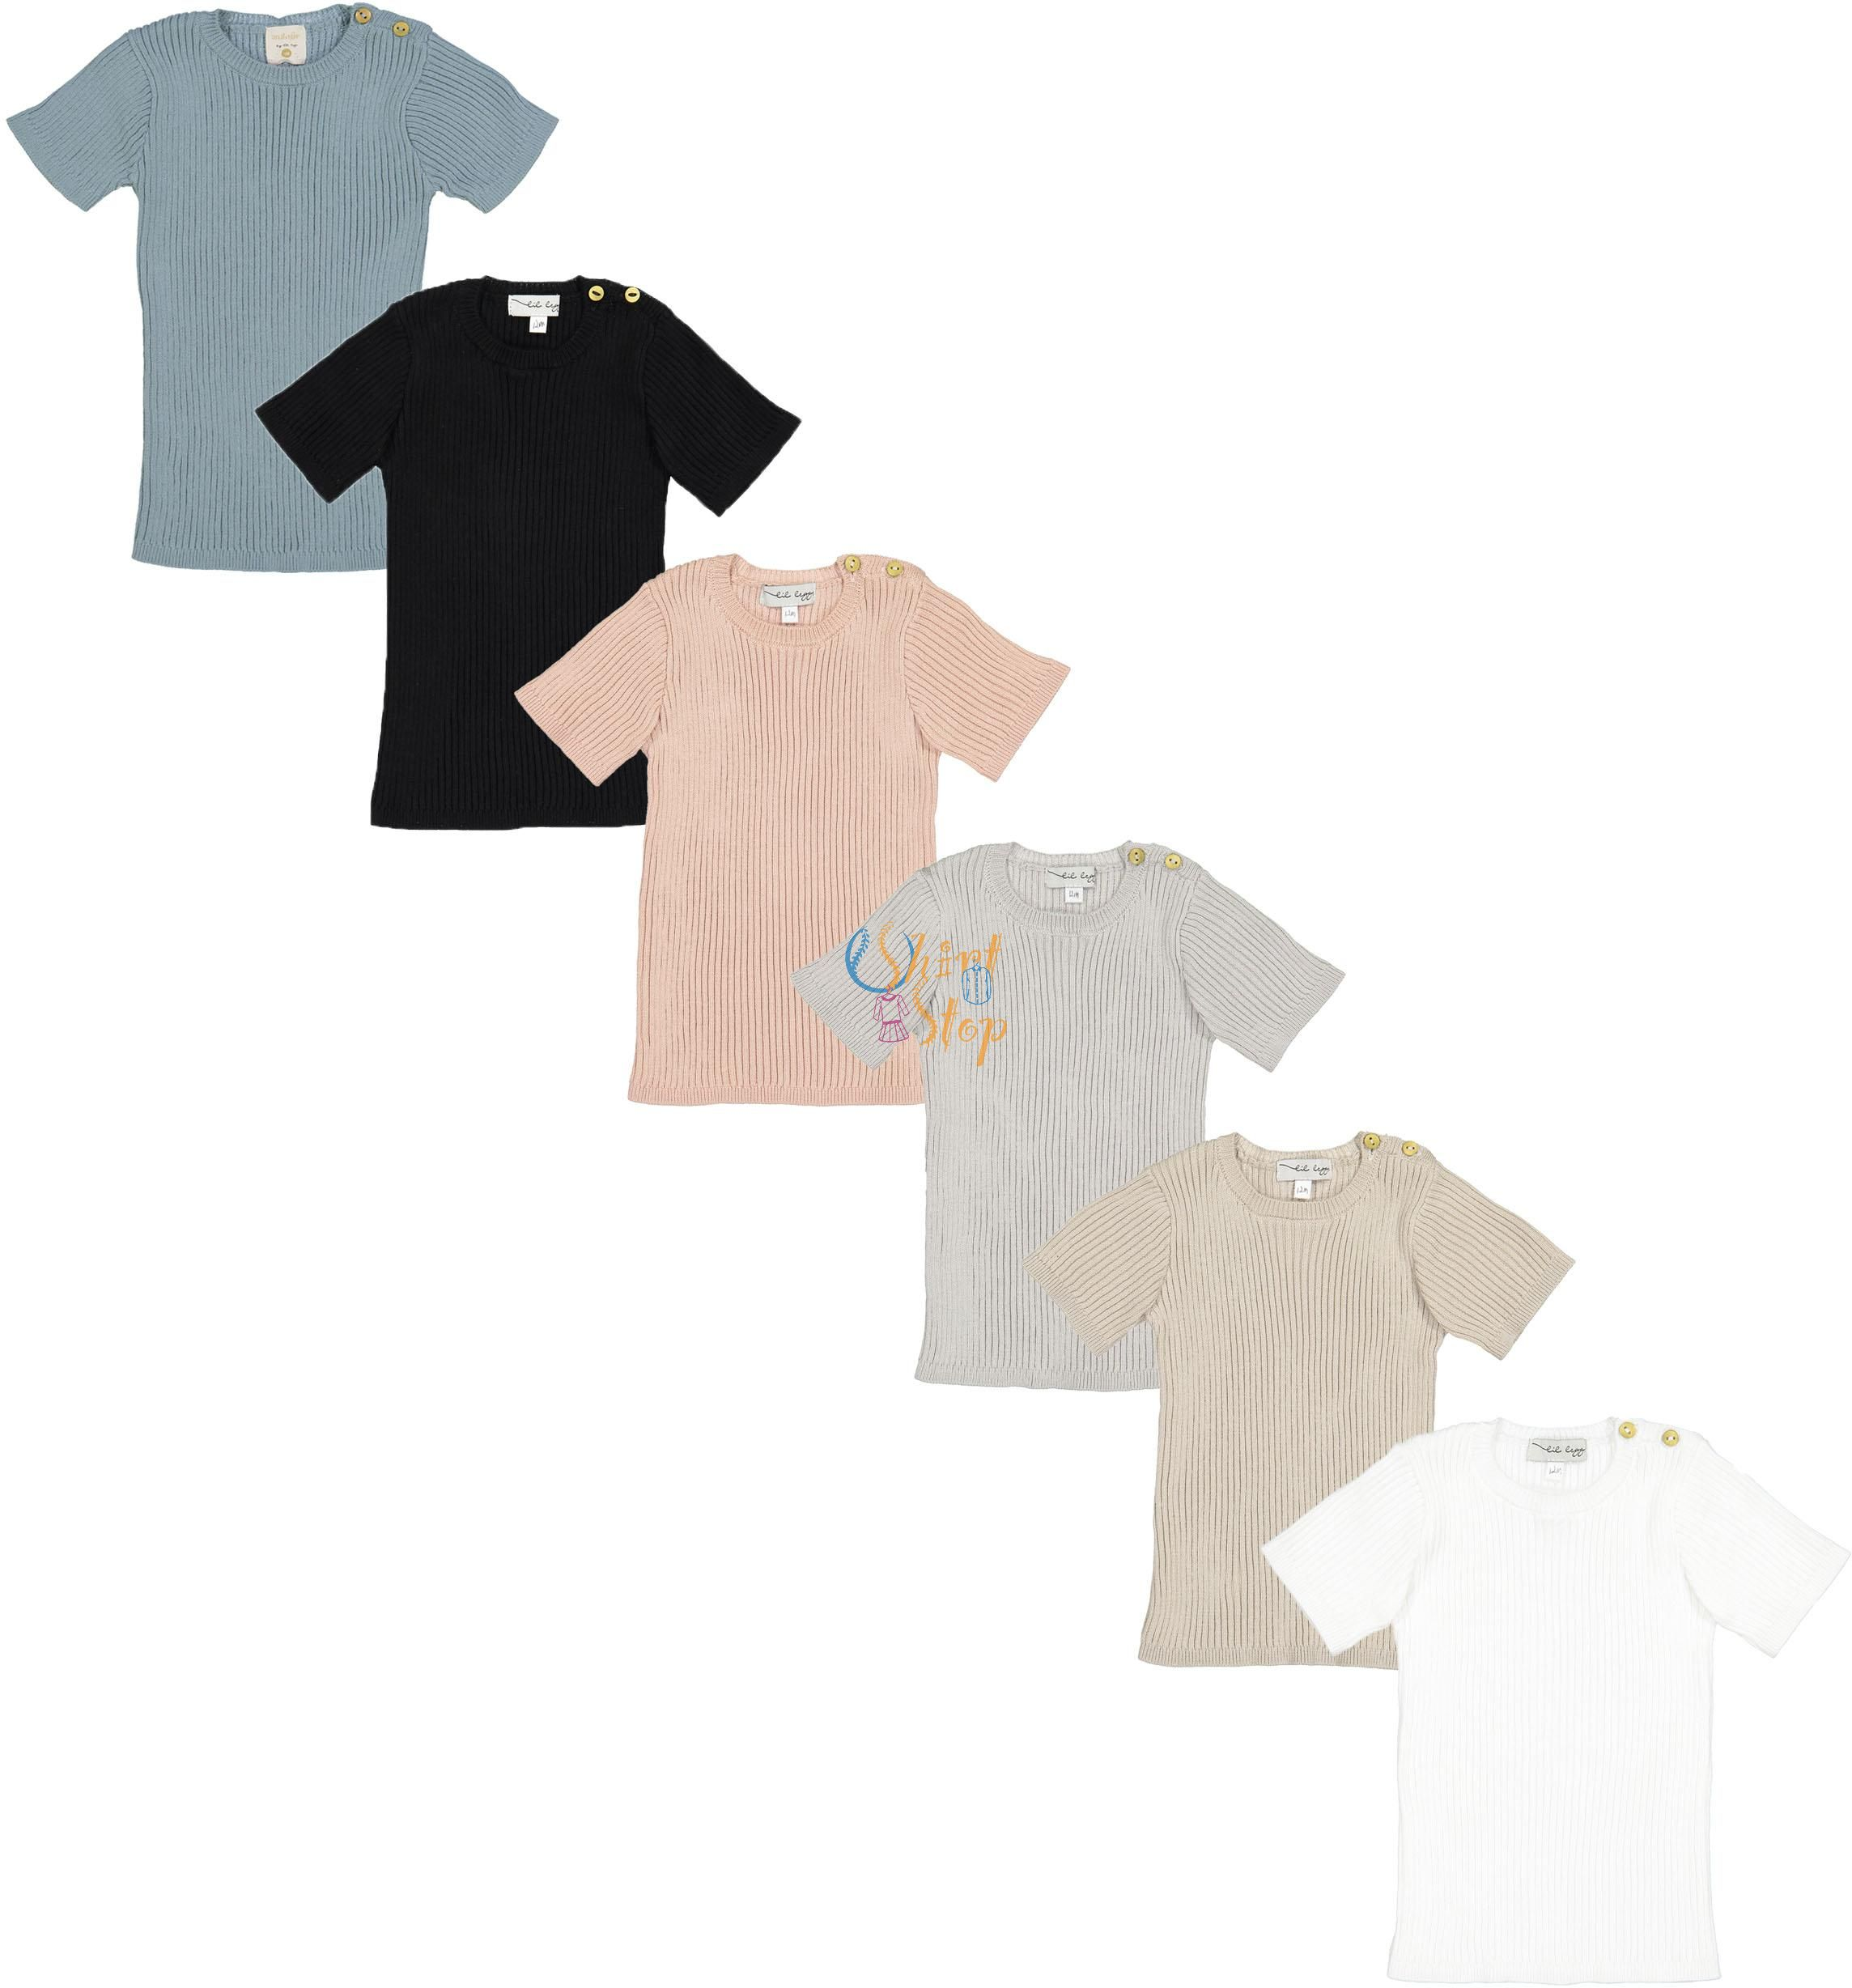 Analogie by Lil Legs Boys Girls Unisex Baby Toddler Summer Ribbed Knit Short Sleeve T-Shirt Sweater